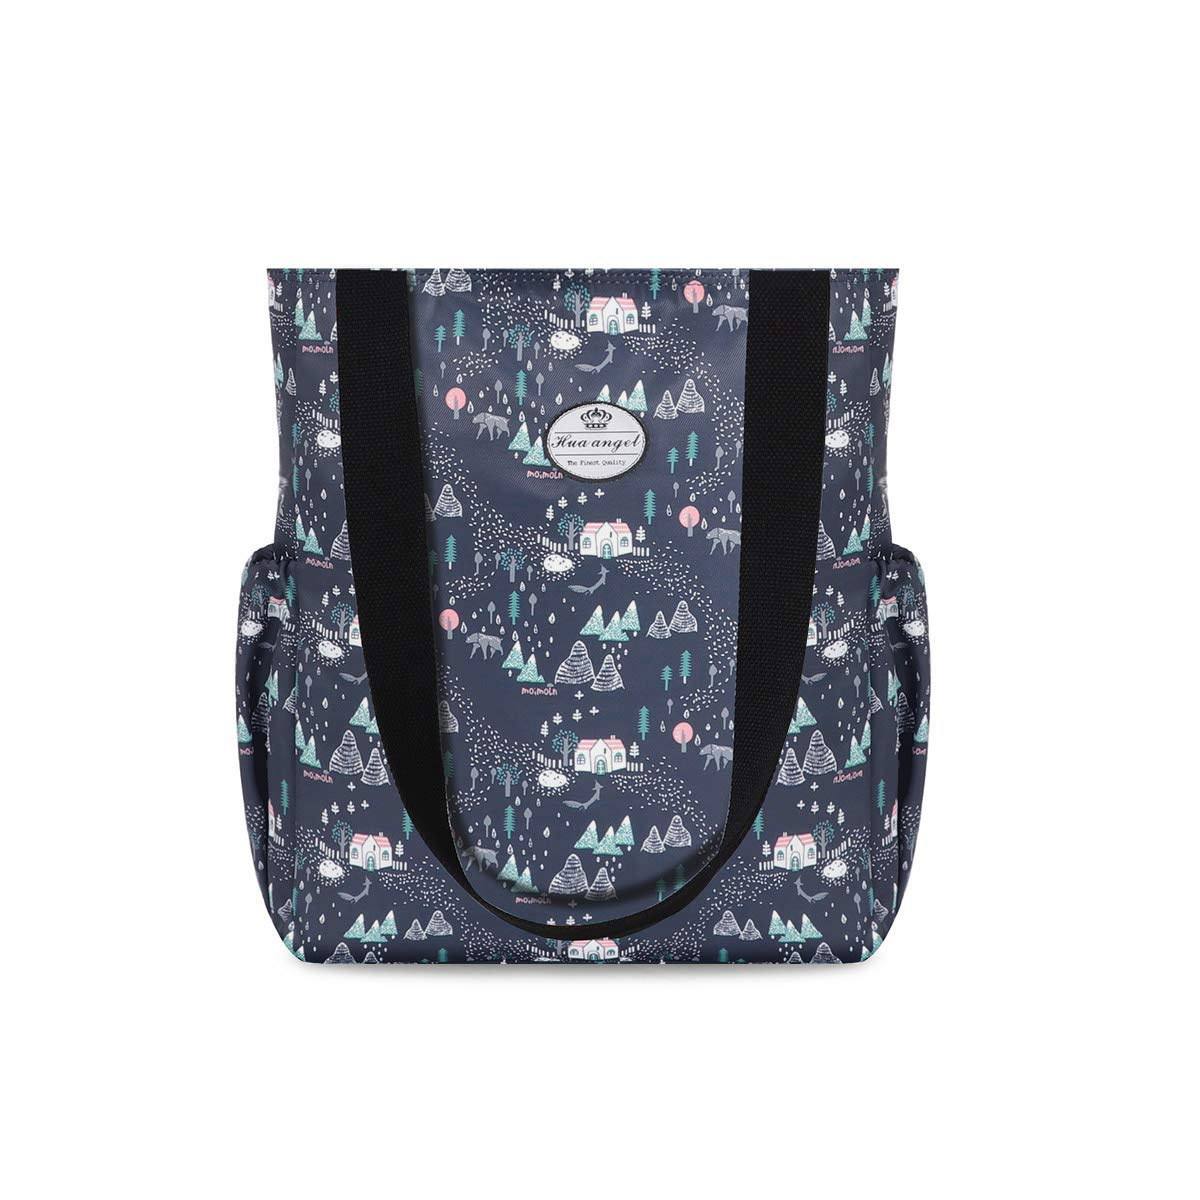 Hua angel Shoulder Tote Bag-Floral Daily Casual Travel Handbag for Gym Shopping